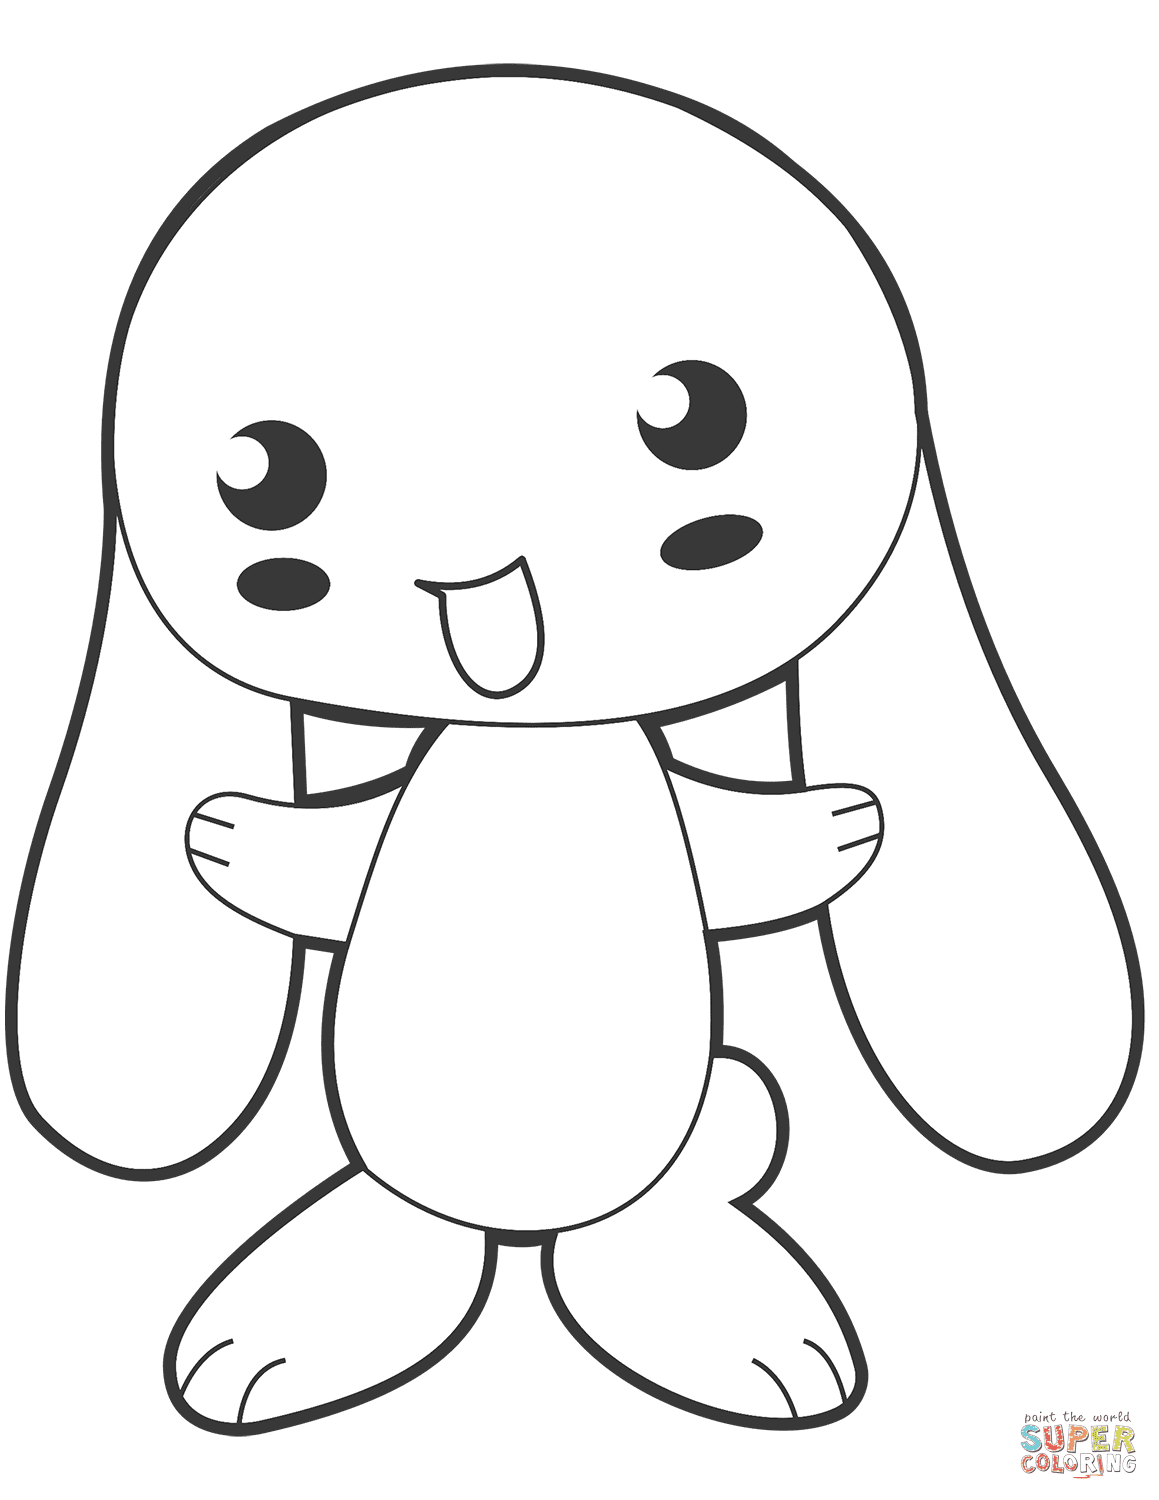 Cute Anime Bunny coloring page | Free Printable Coloring Pages